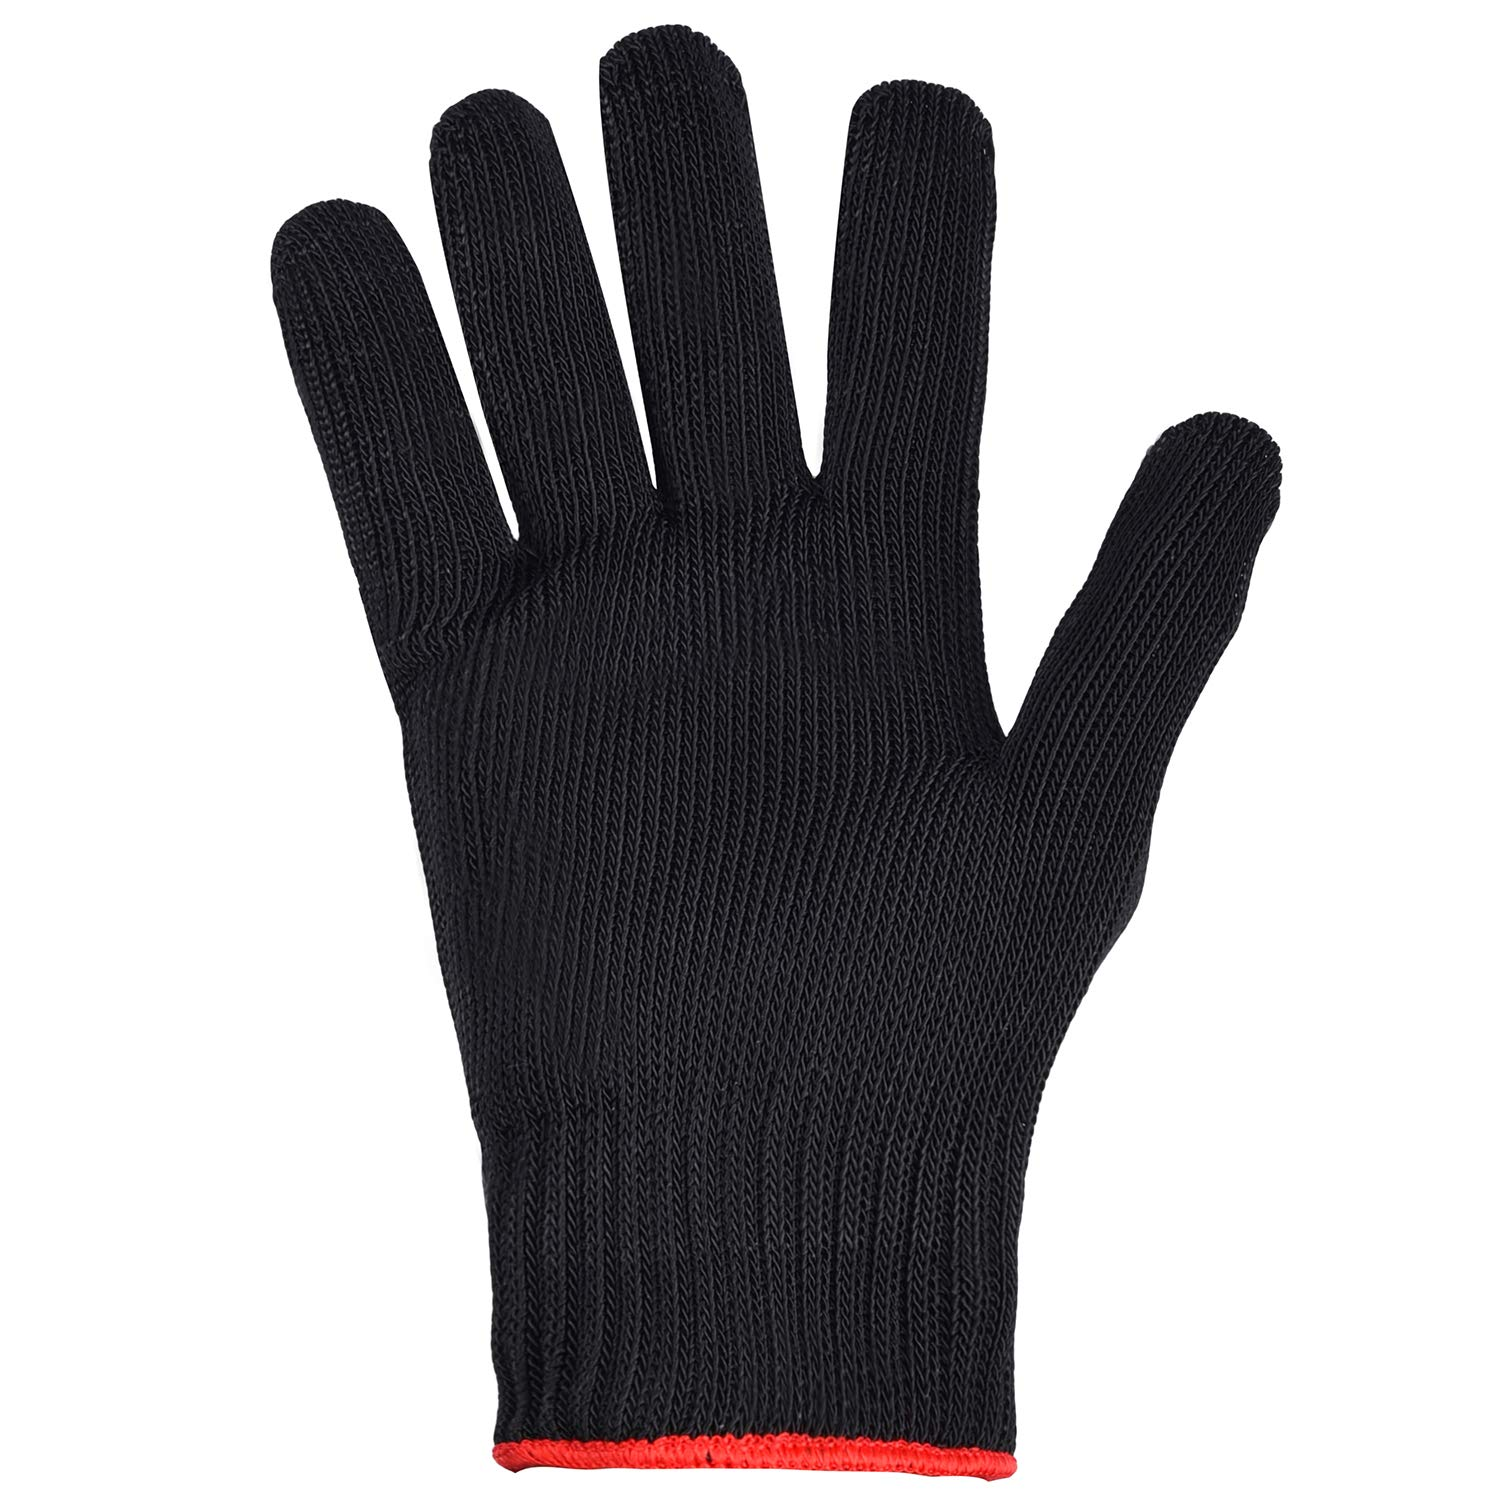 MadBite Cut Resistant Glove - 1 Piece Fishing Glove for Men, Women, Kids - Highest Safety Rating Fillet Gloves for Cutting, Slicing, Peeling, and Grating in The Kitchen (Large)